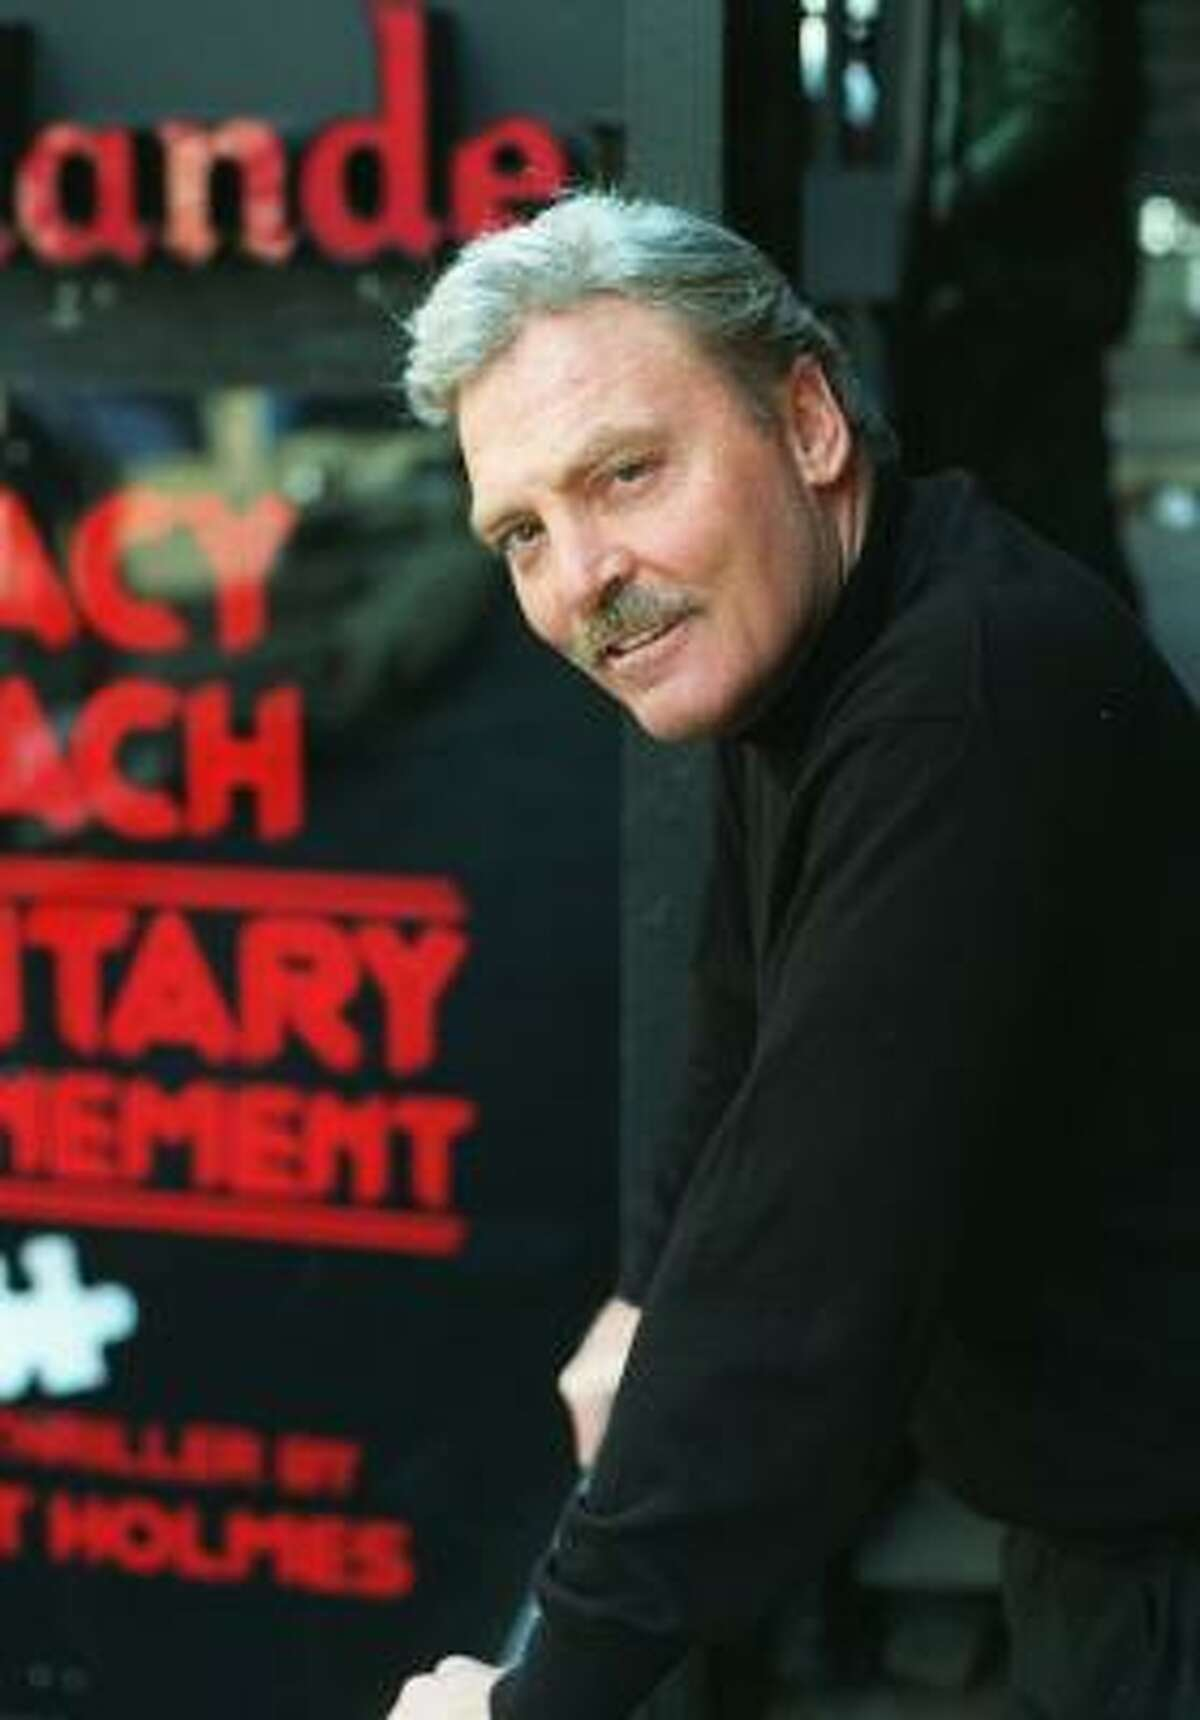 Actor Stacy Keach is recovering after suffering a mild stroke.